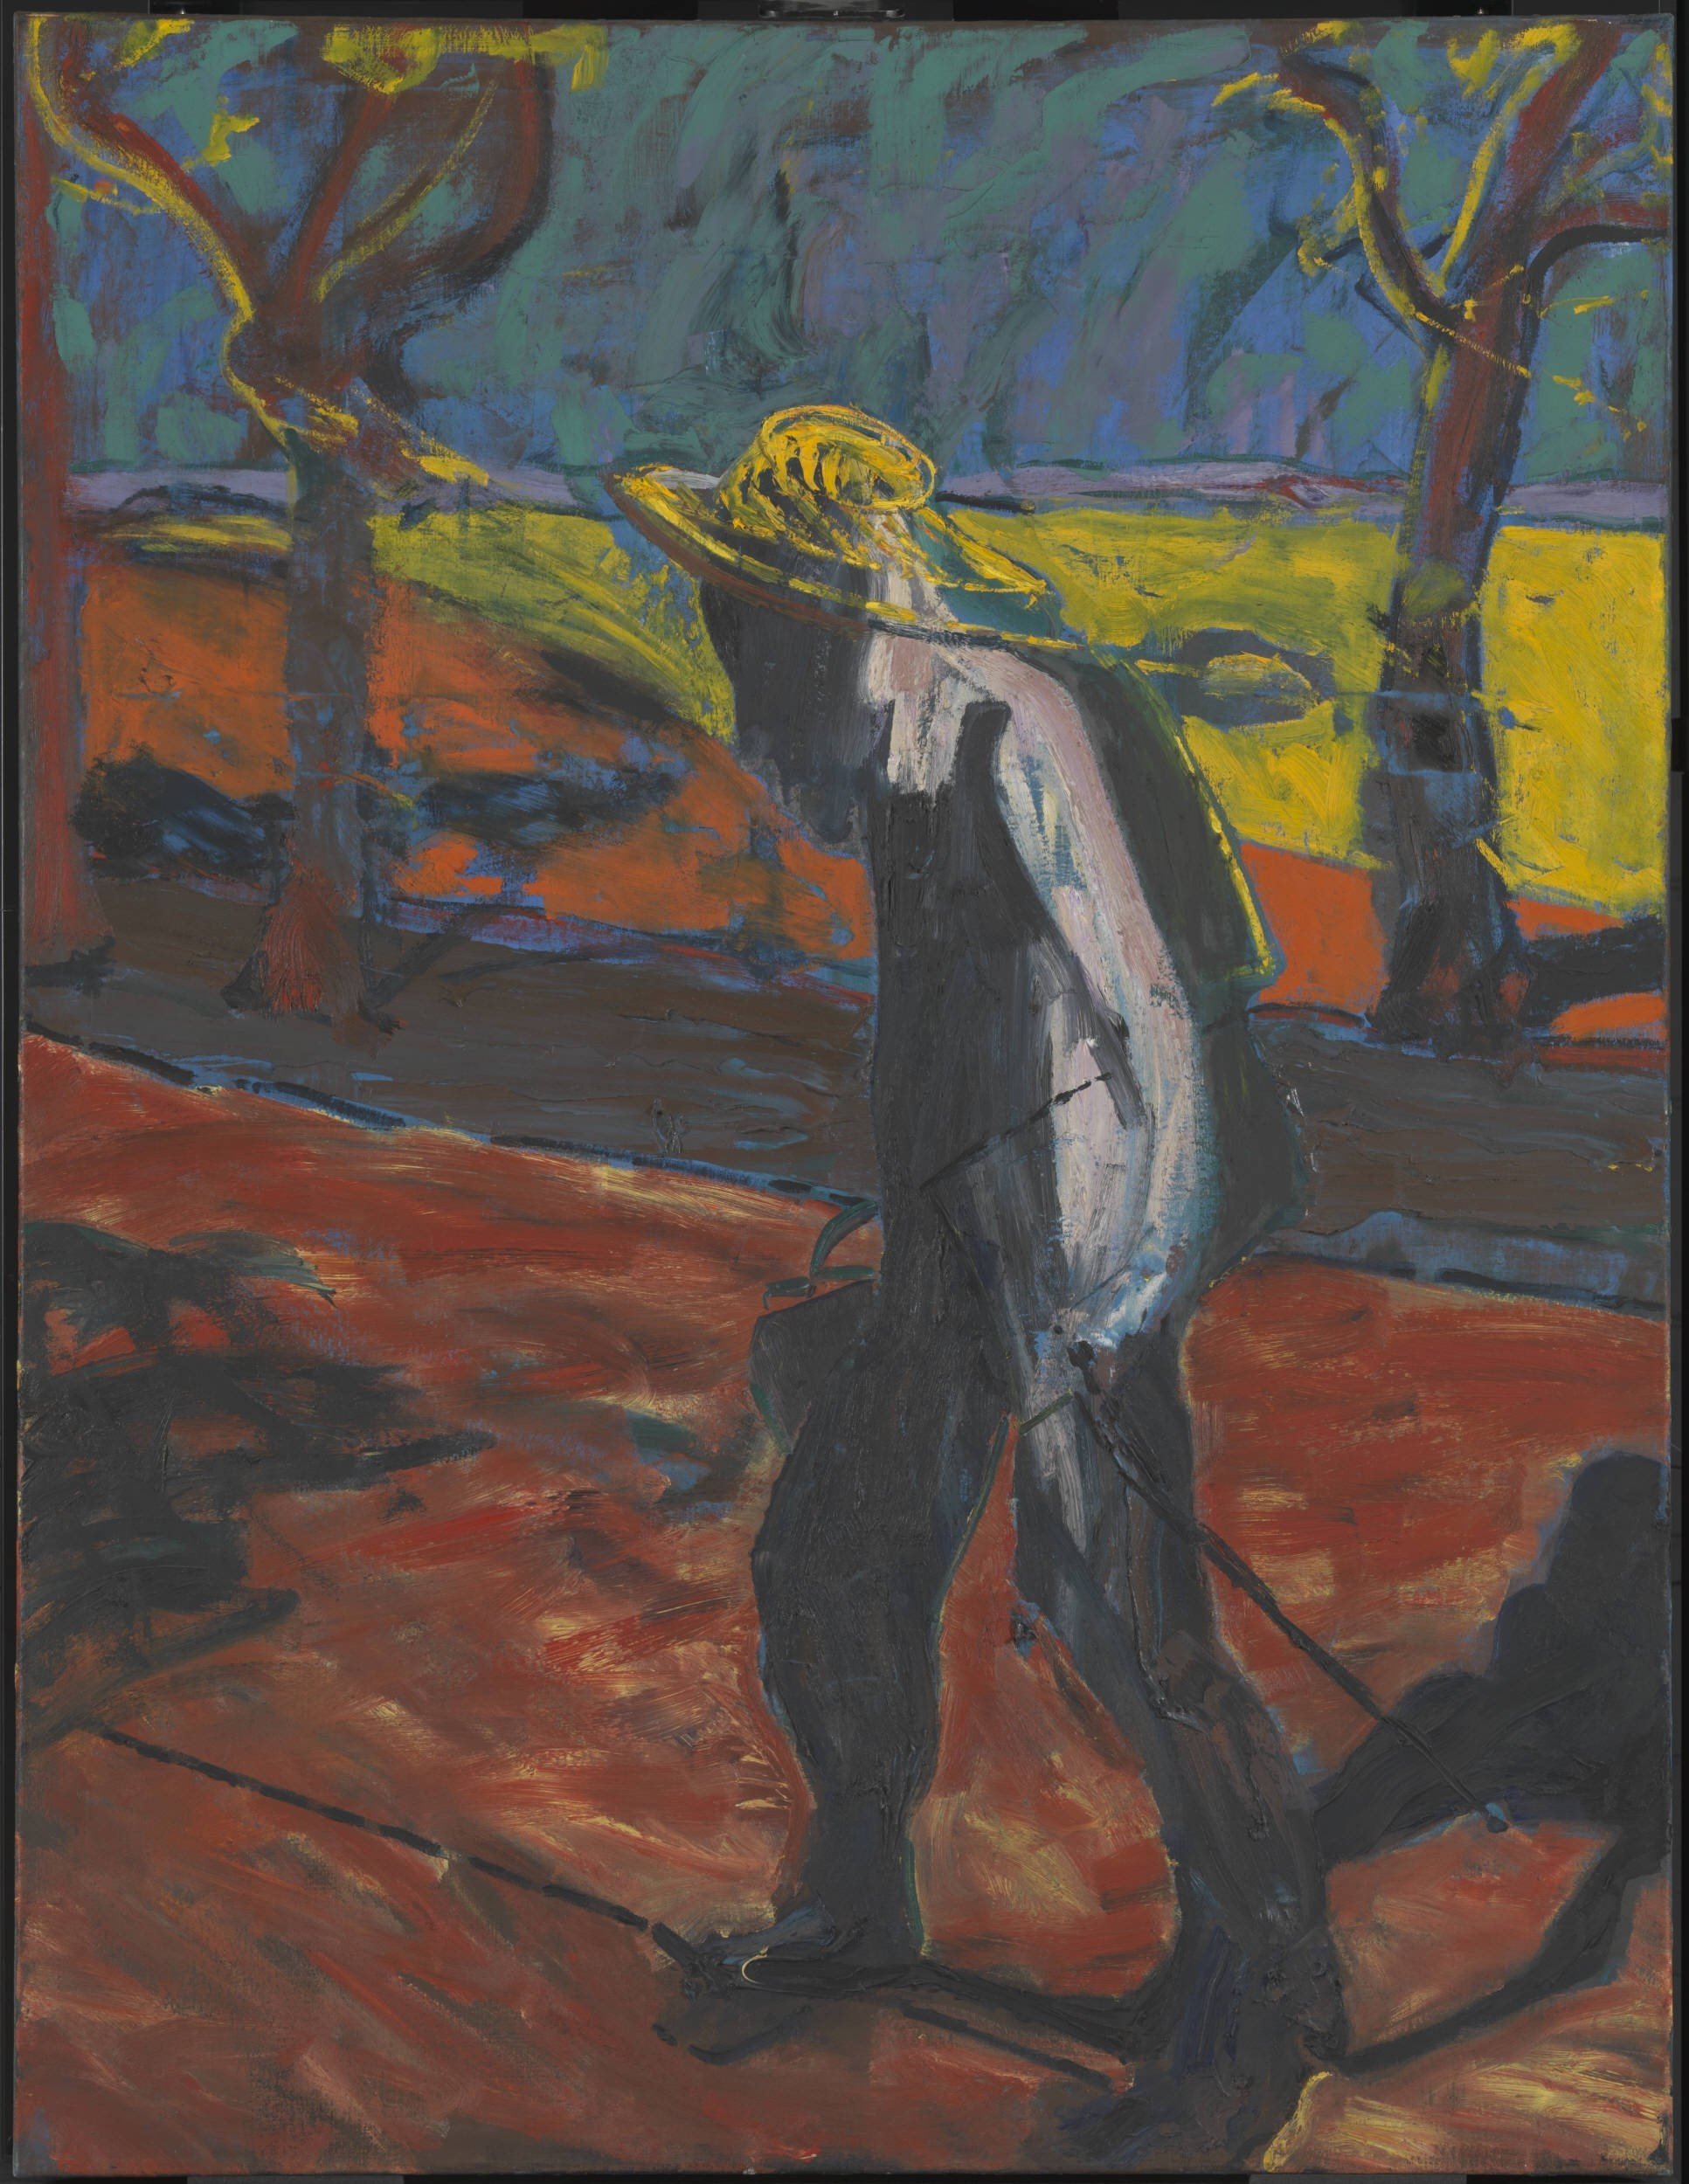 Francis Bacon's Study for Portrait of Van Gogh IV, 1957 (The Estate of Francis Bacon)